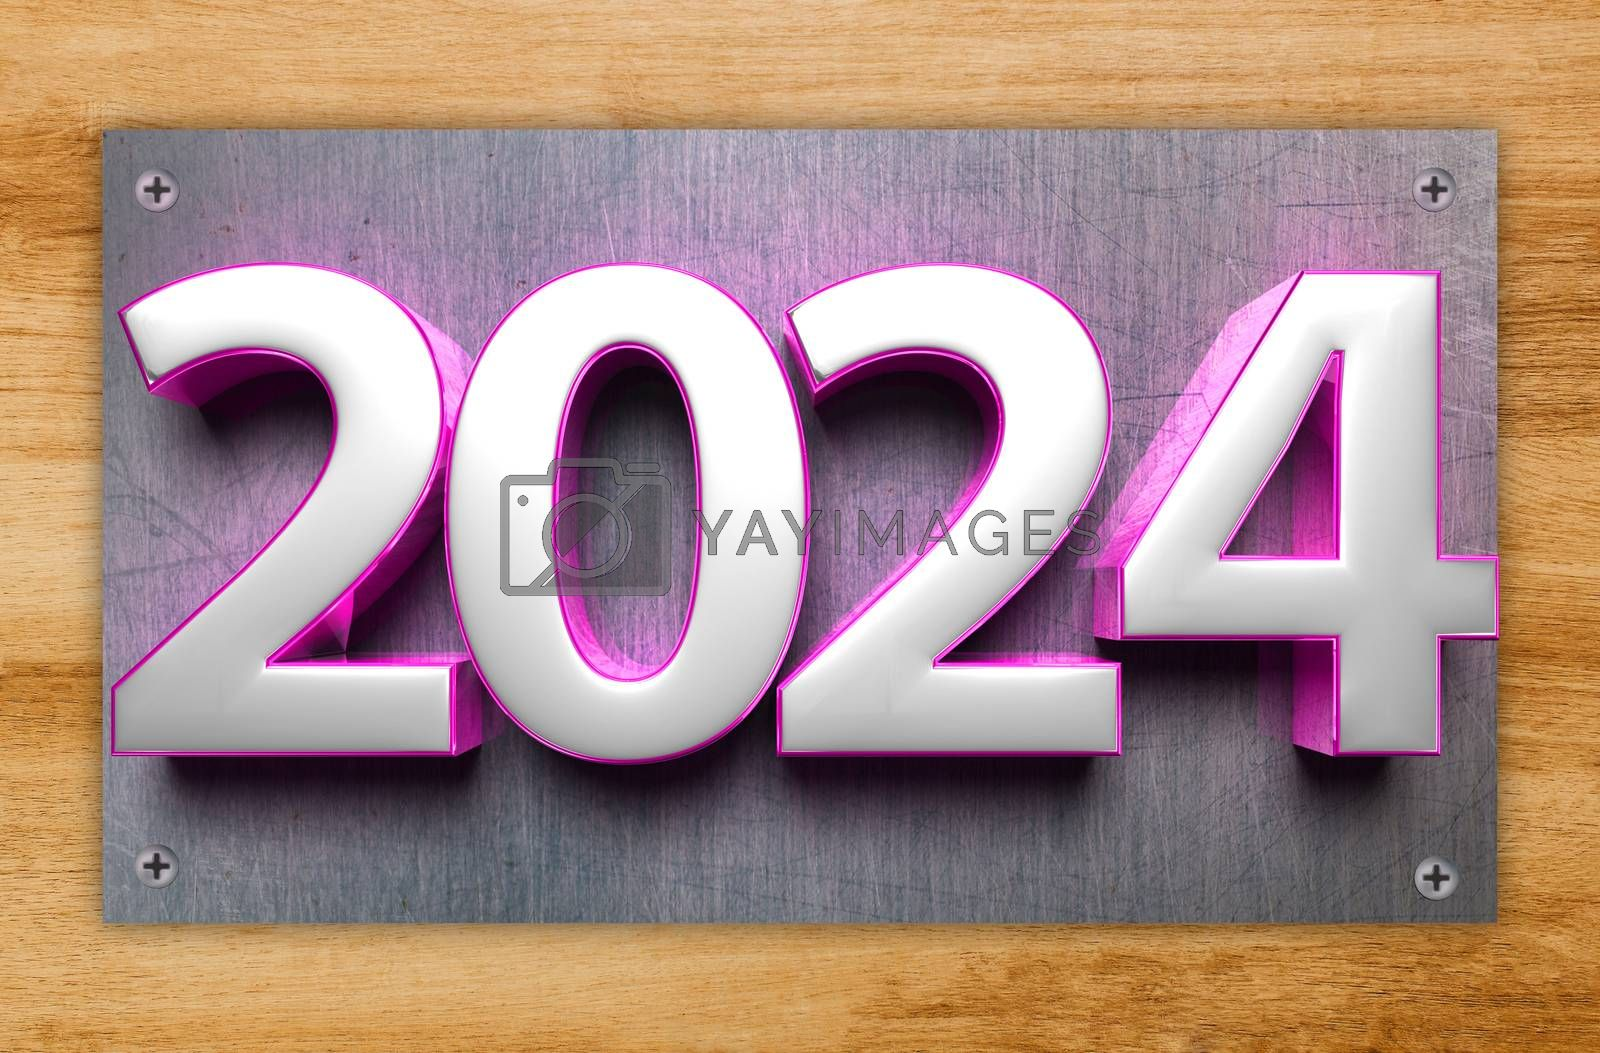 3D illustration number 2024 Stainless Steel Signs isolated Wood grain background.(with Clipping Path).